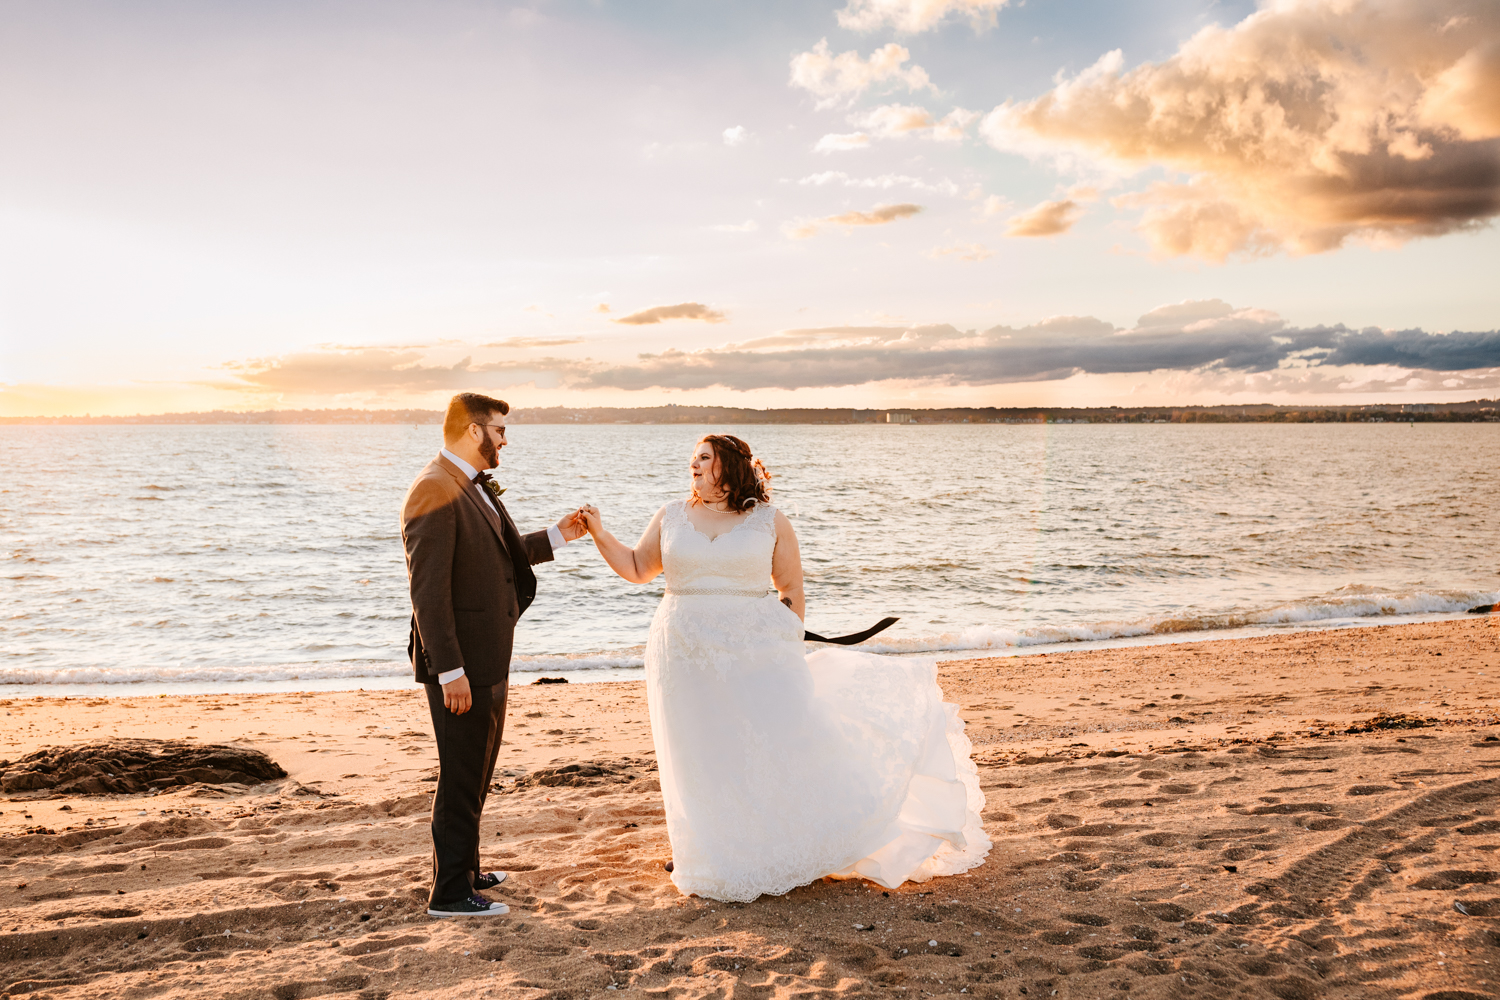 Bride and groom dancing on beach during sunset wedding day